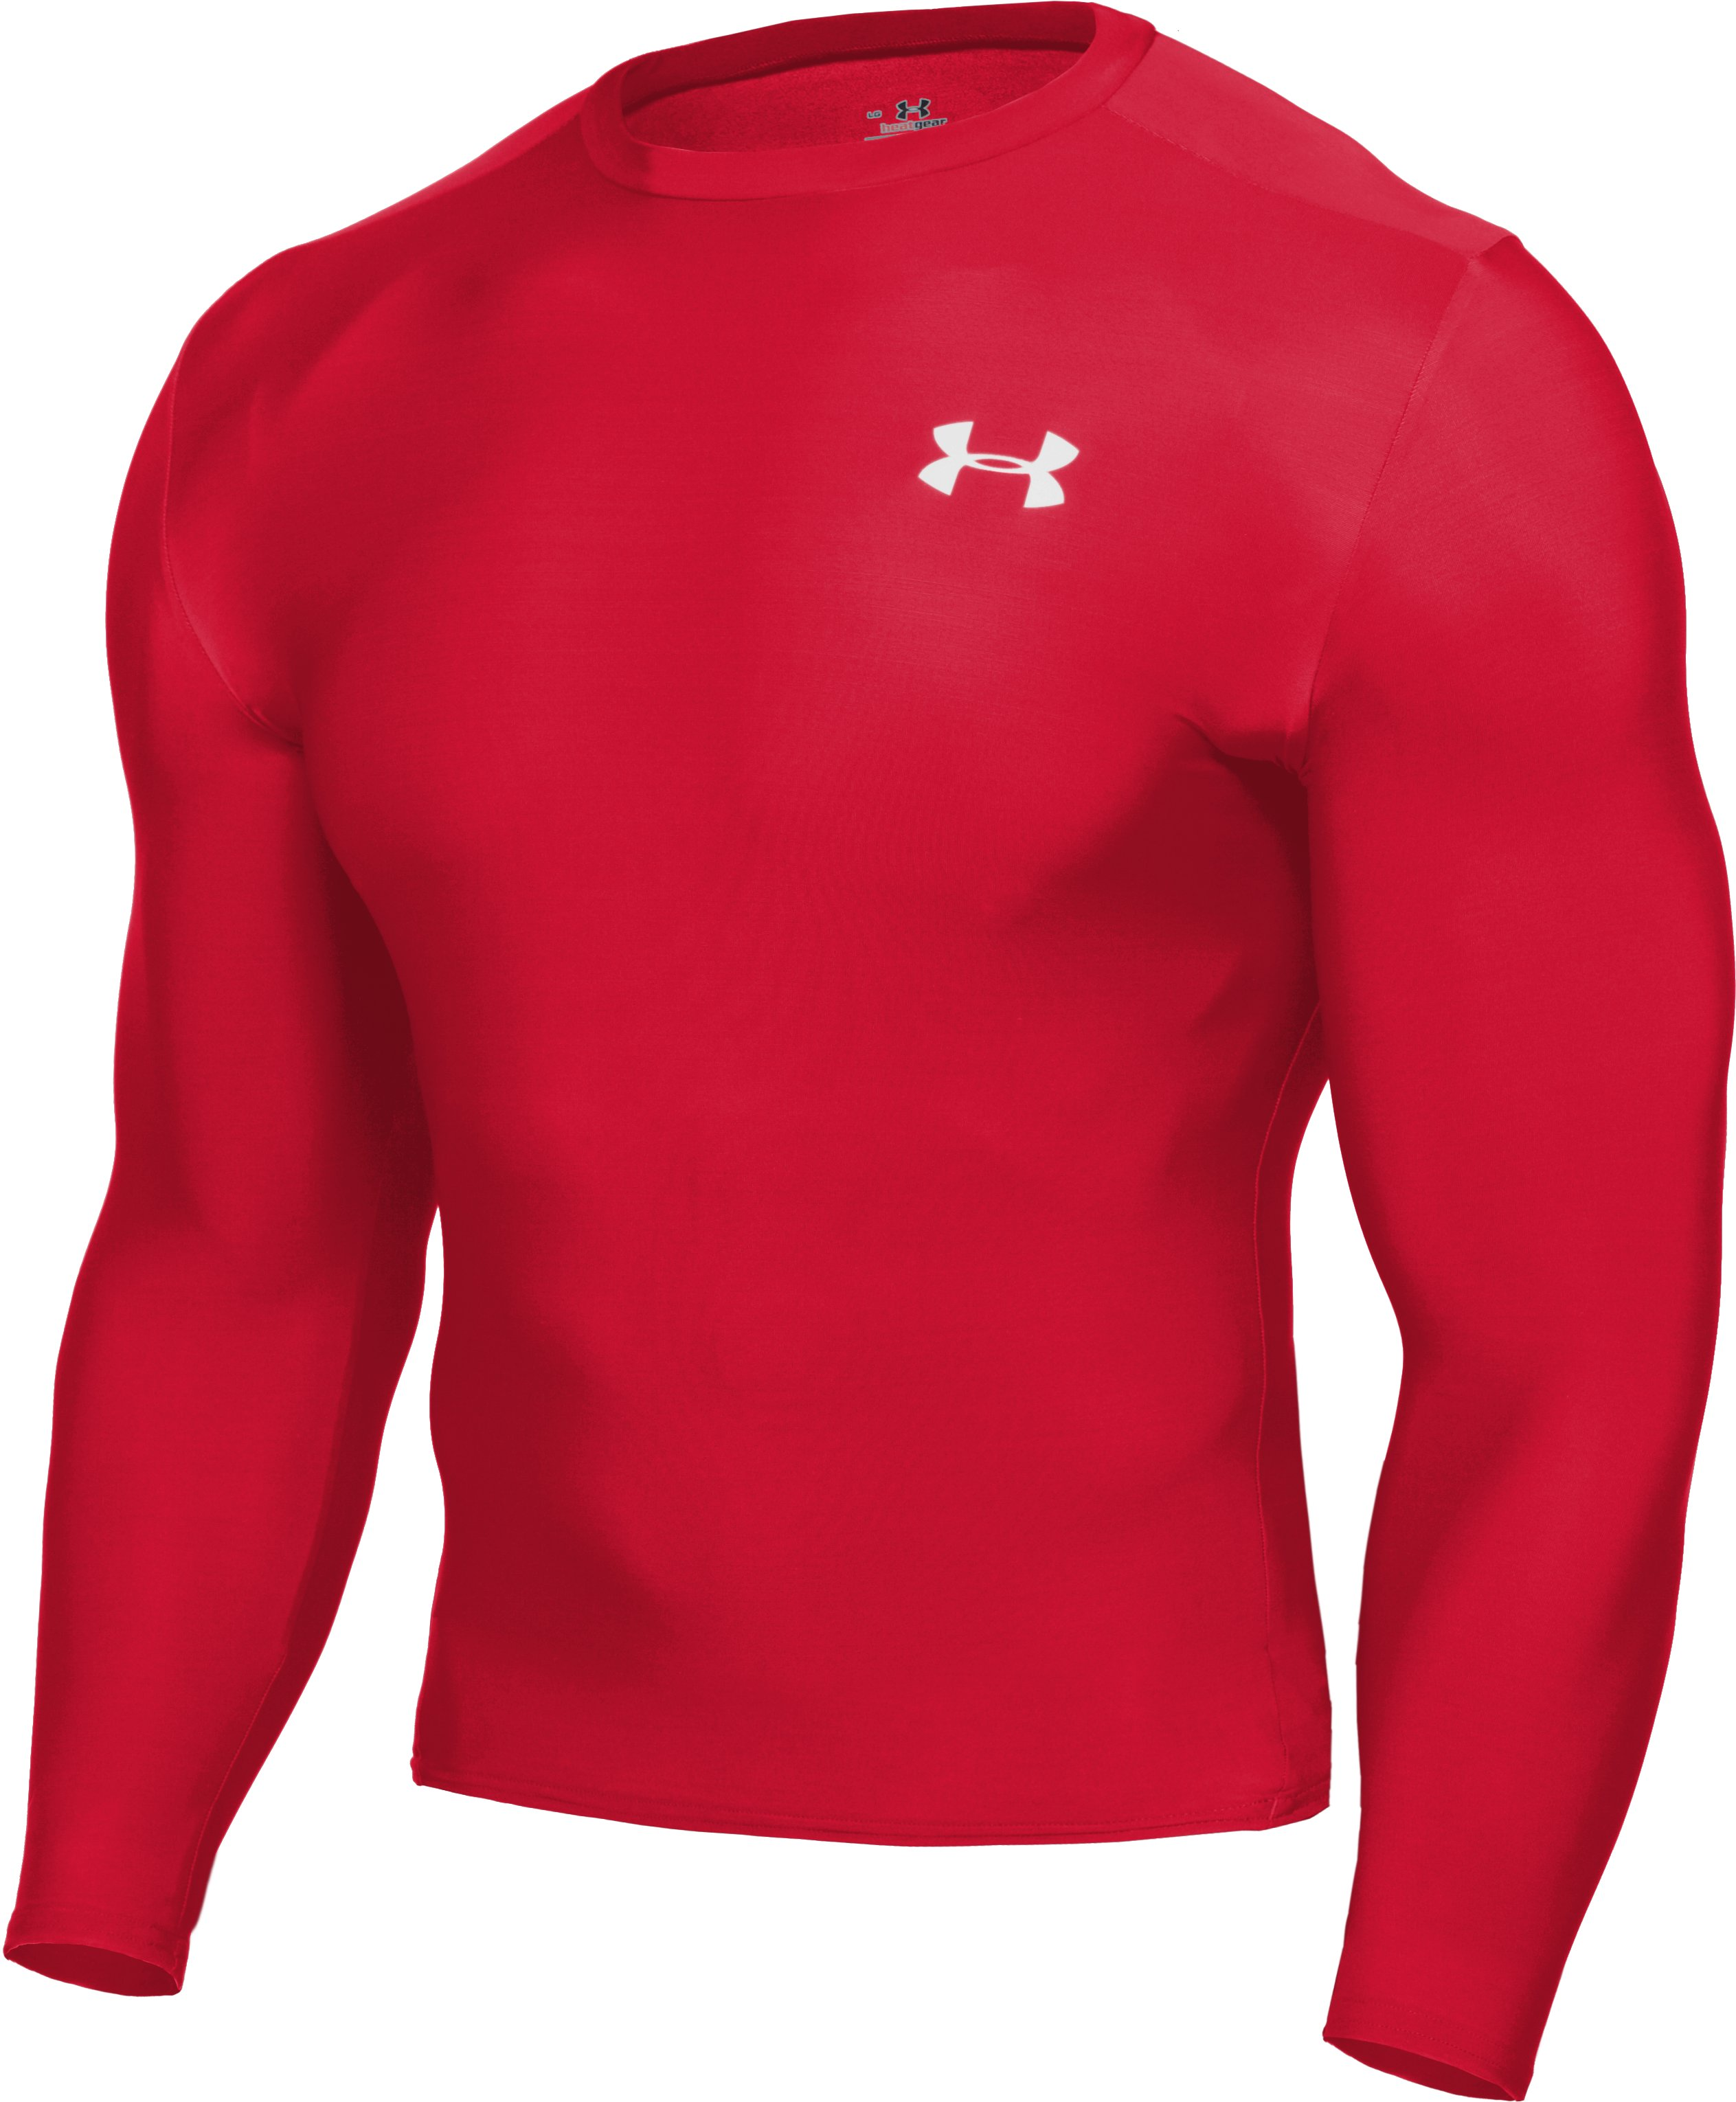 Men's HeatGear® Compression Long Sleeve T-Shirt, Red